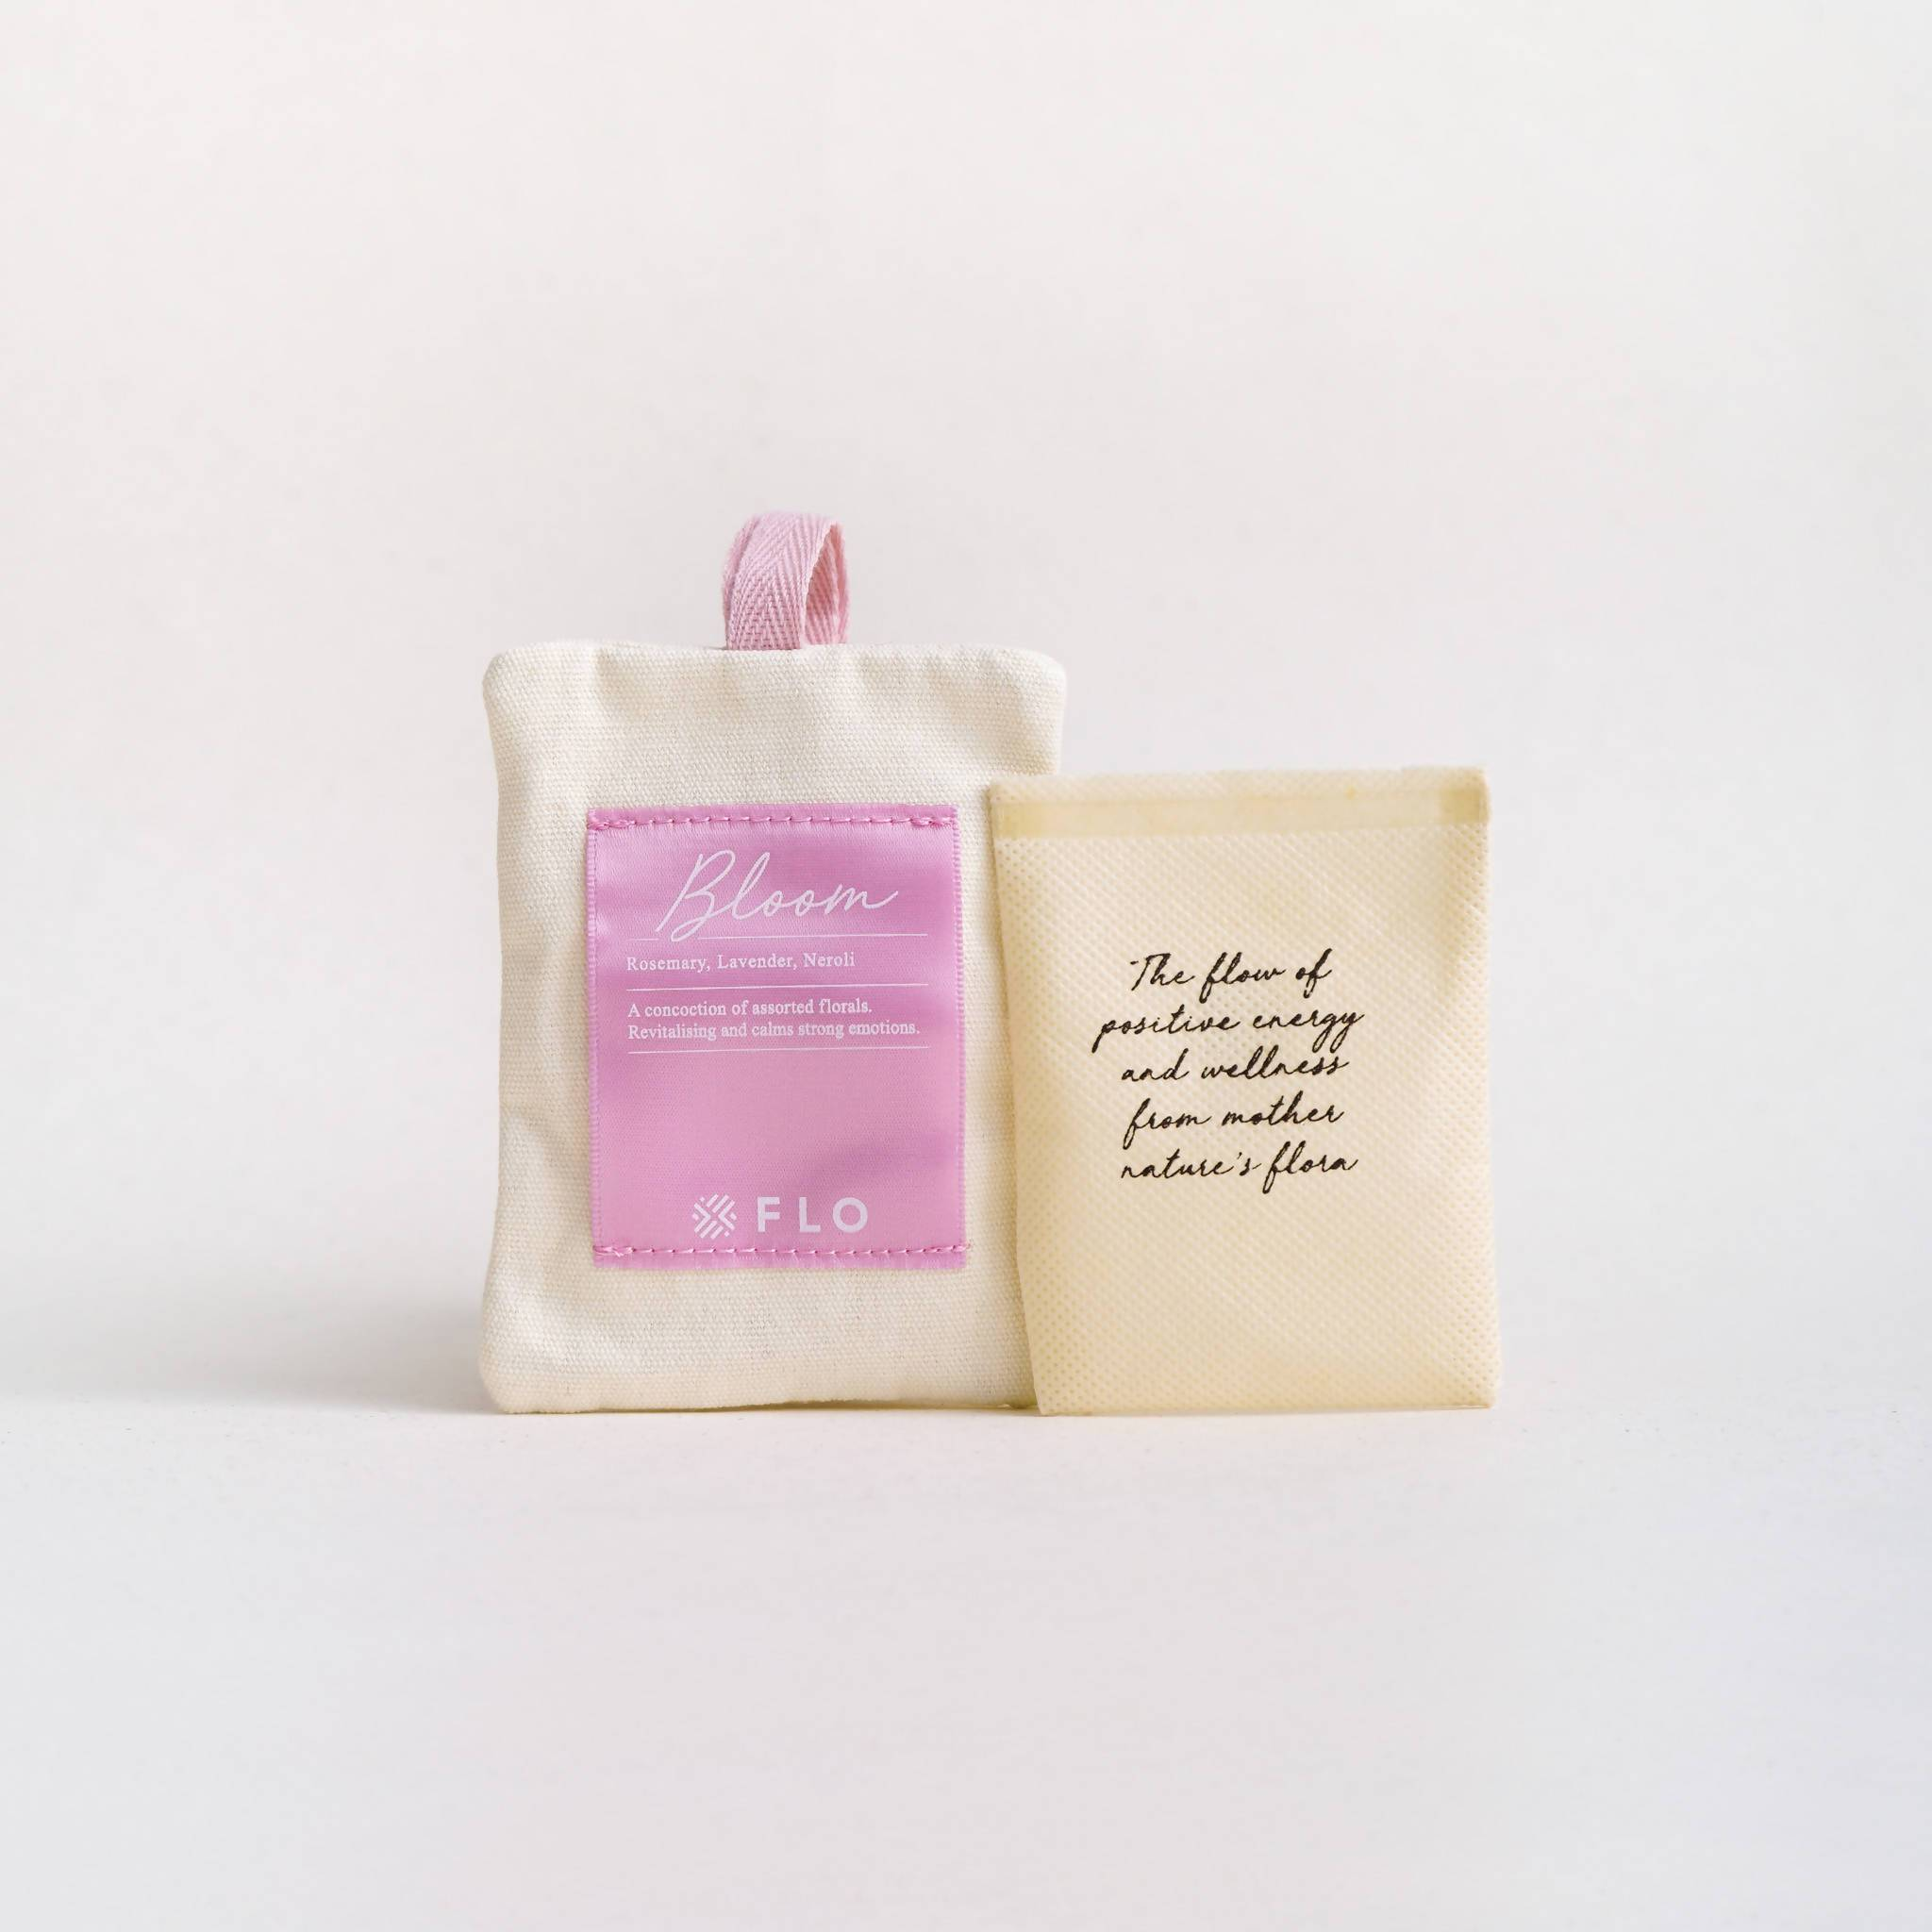 Aromatic Sachet - Bloom - Other Home Fragrances - FLO - Naiise